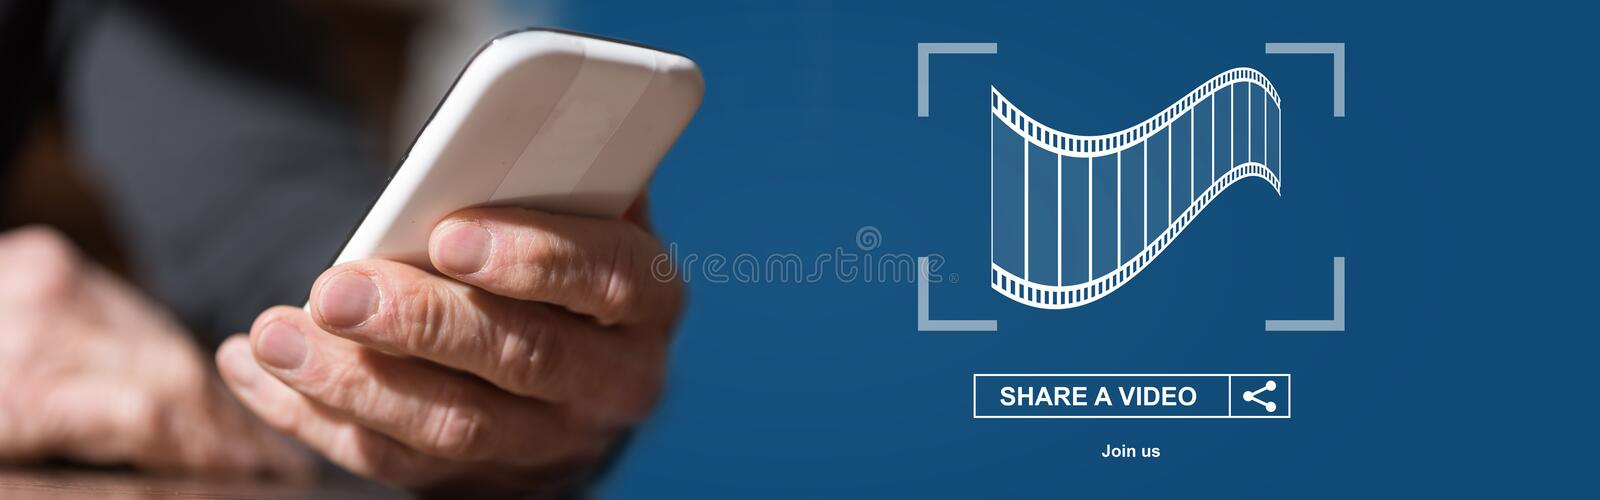 Concept of online video sharing stock photography